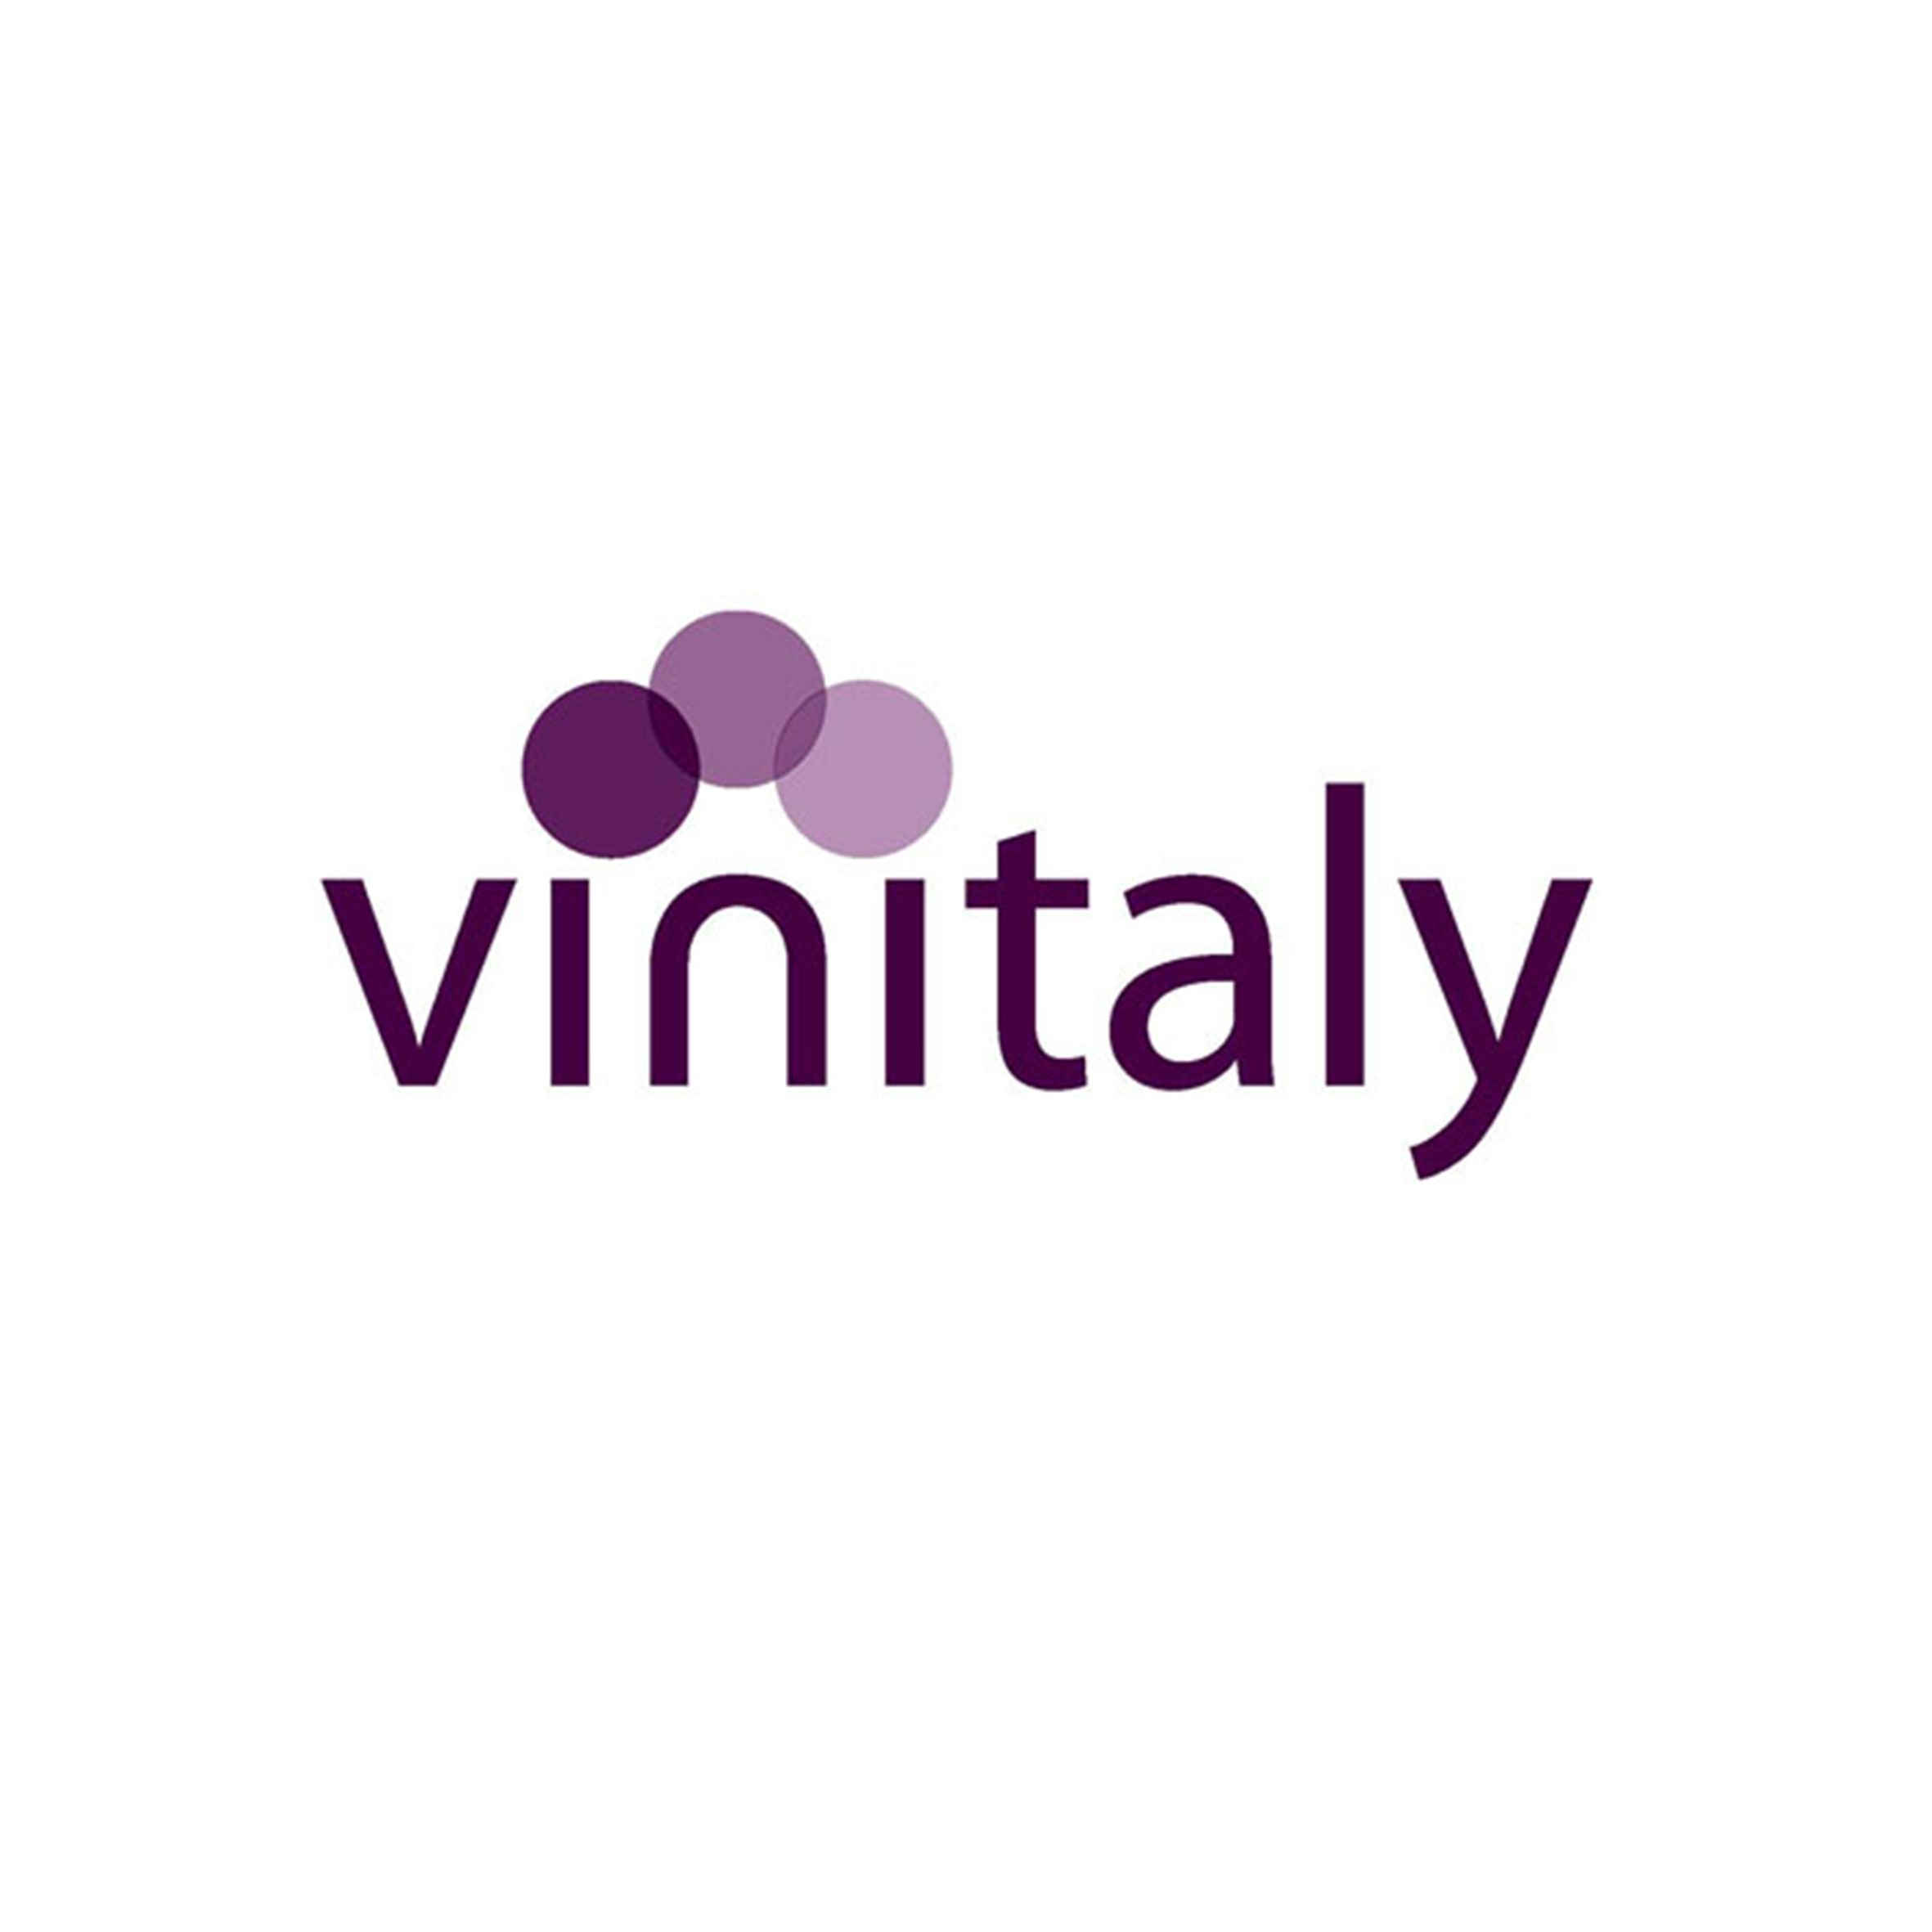 Vinitaly - Global Trends Video #2: Retail